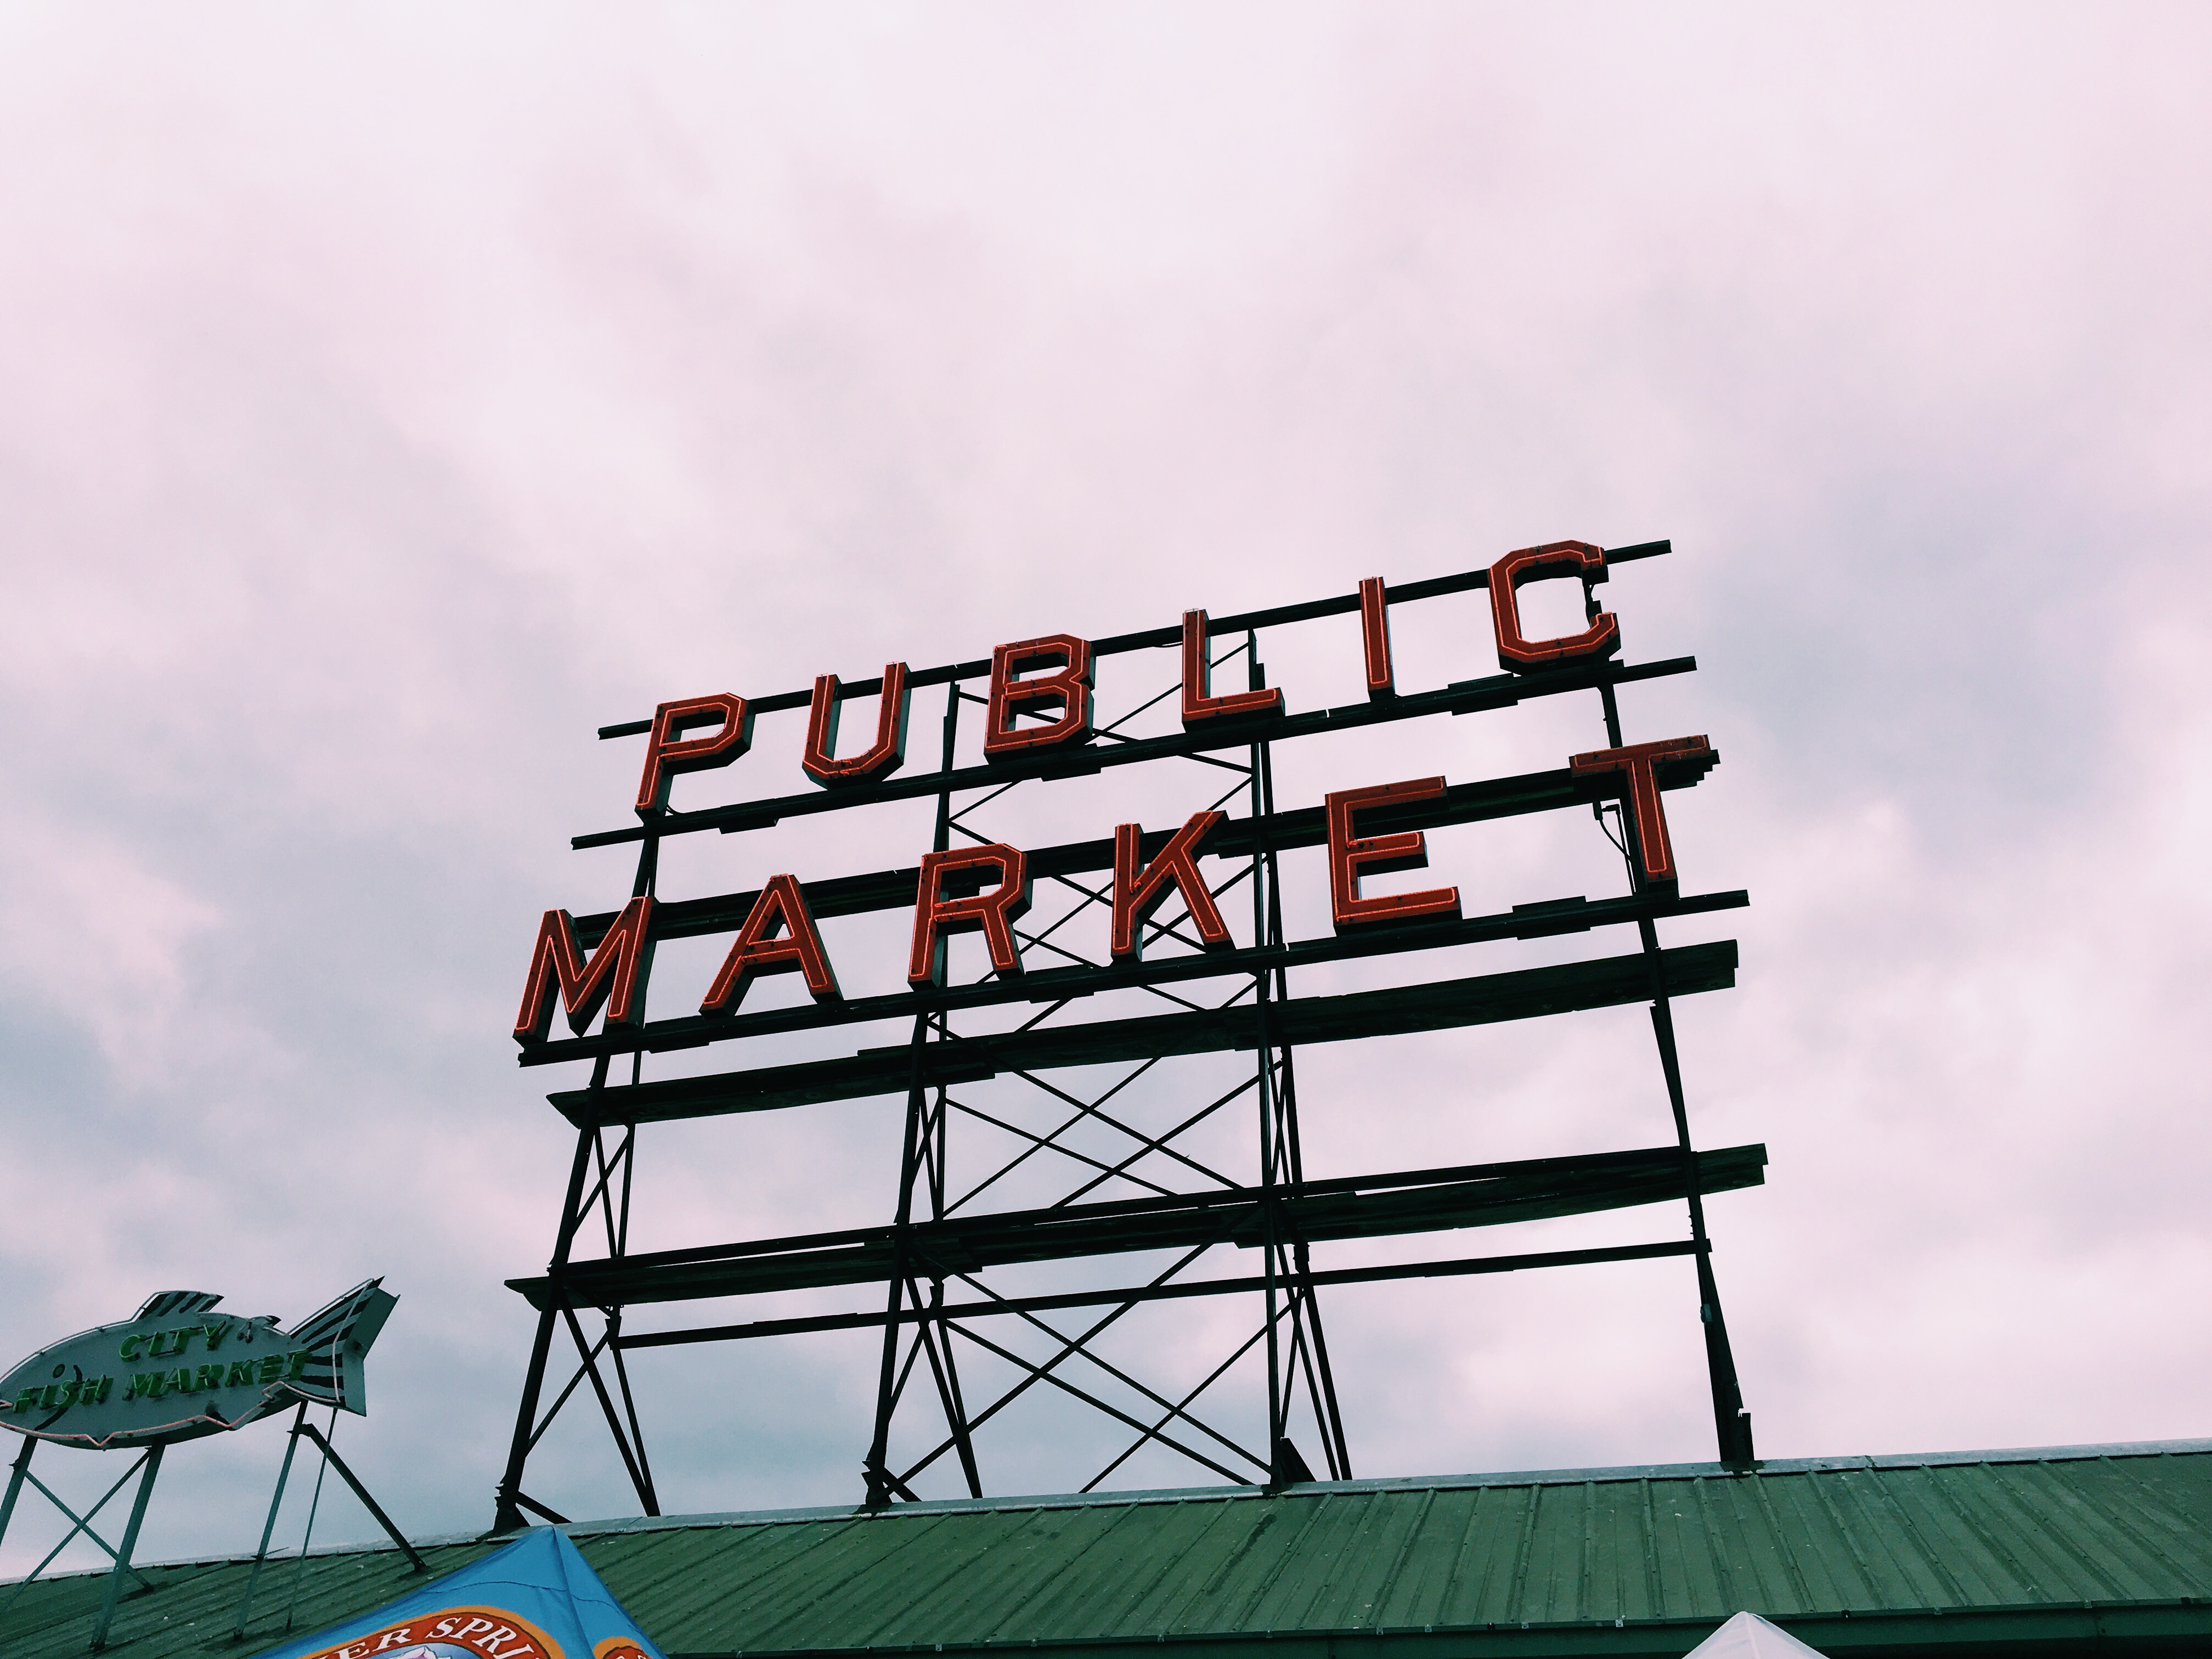 Public Market; did you know the locals only call it Pike's Place, vs. Pike's Marketplace?